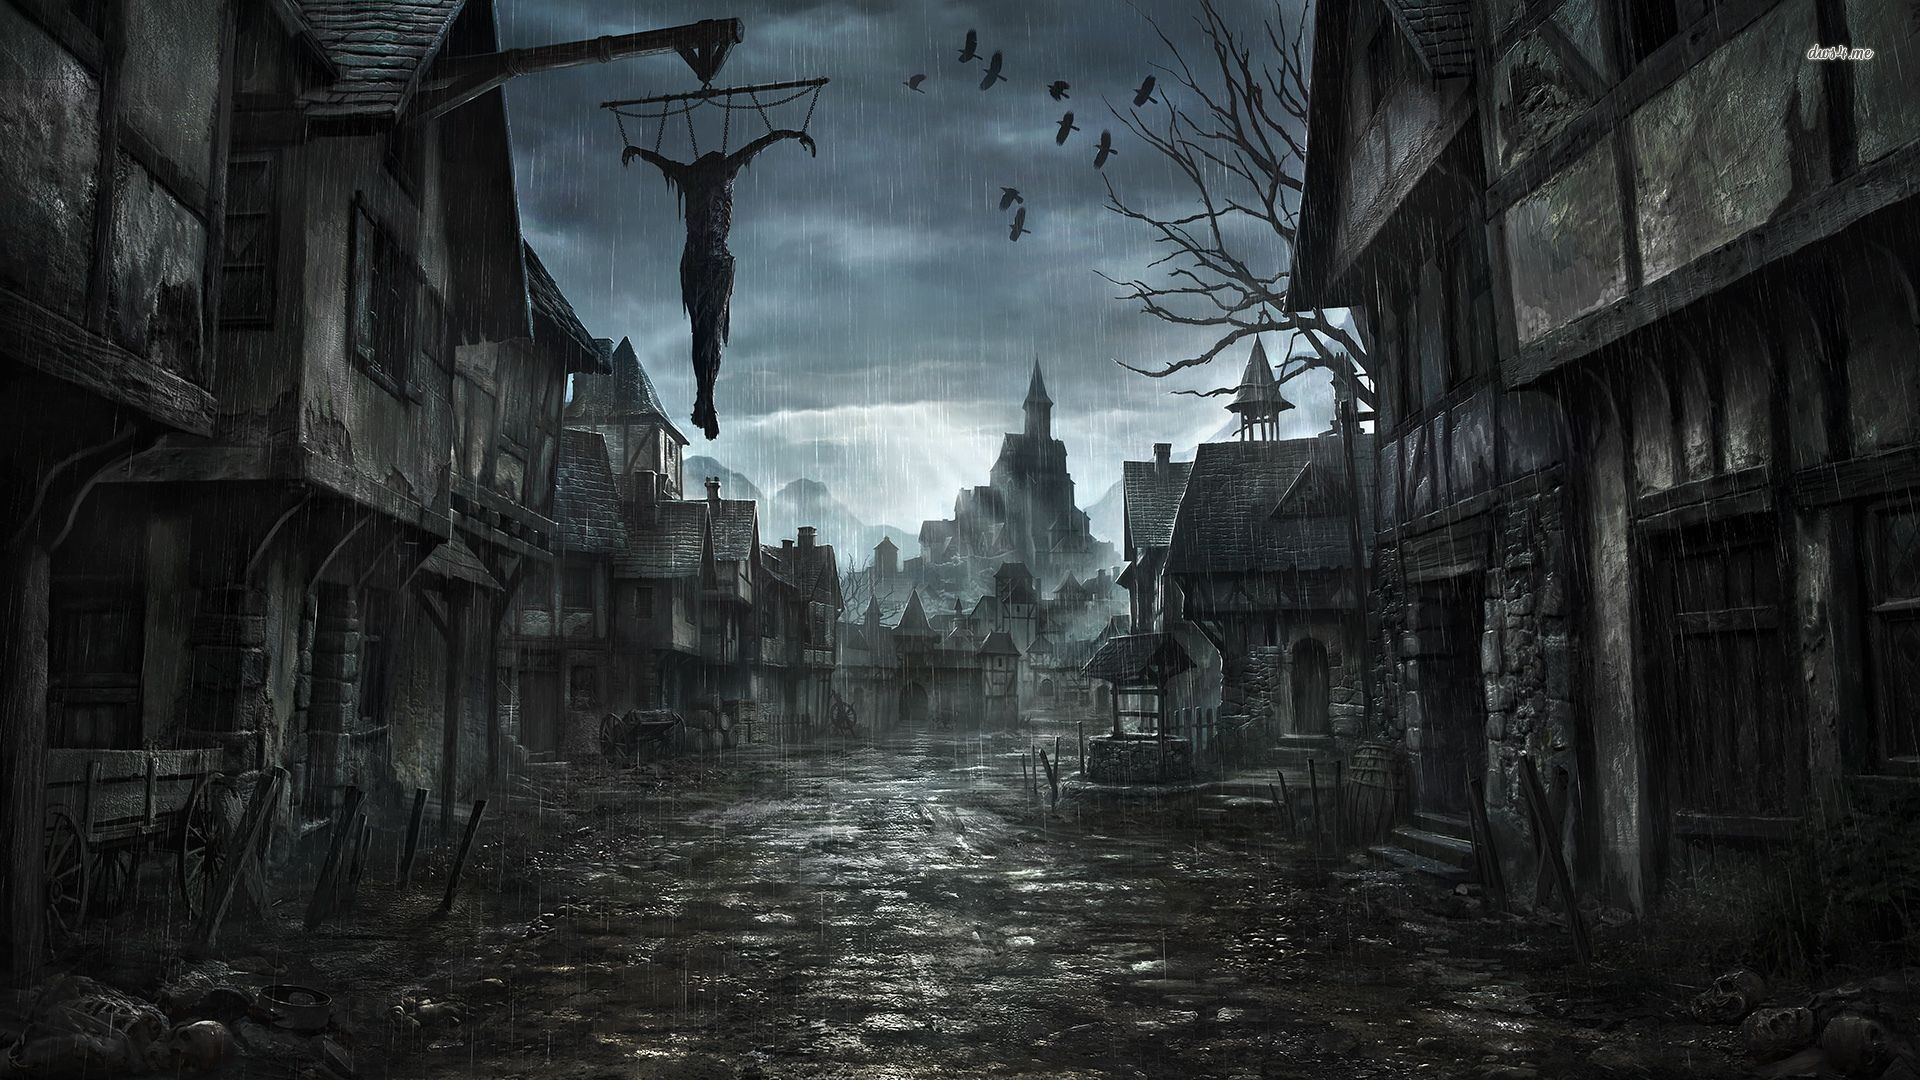 1920x1080 Ghost Town in Poland wallpapers and images wallpapers pictures | HD  Wallpapers | Pinterest | Ghost towns, Hd wallpaper and Wallpaper